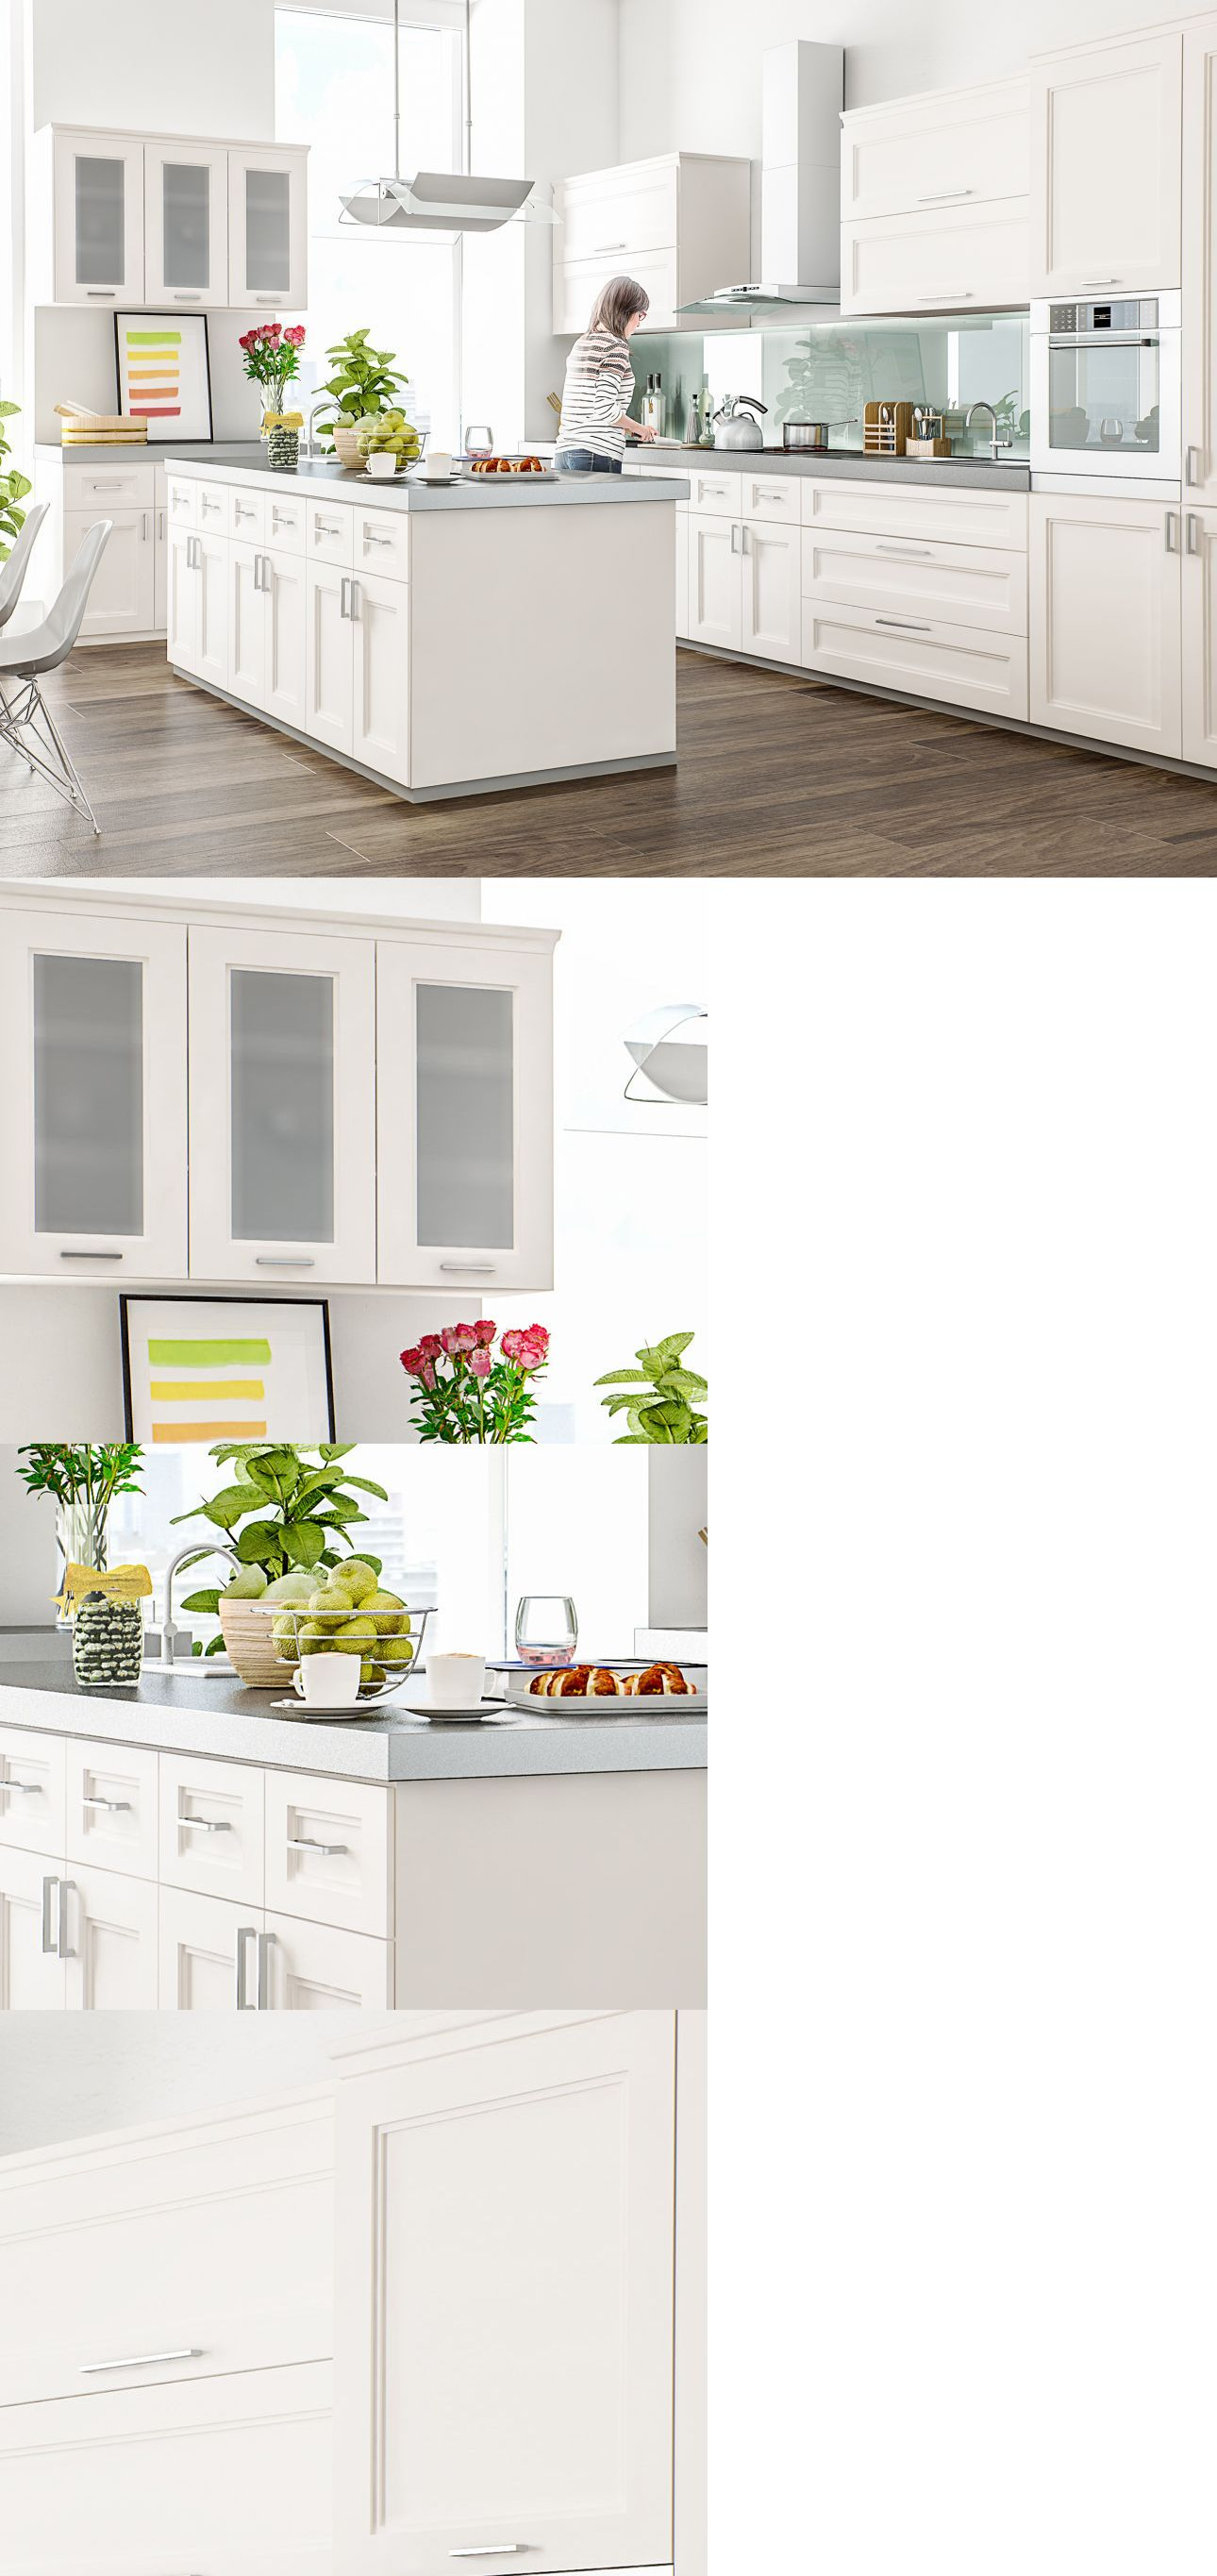 10x10 kitchen cabinets - Cabinets 85879 Transitional All Wood Rta 10x10 Transitional Kitchen Cabinets In Fashion White